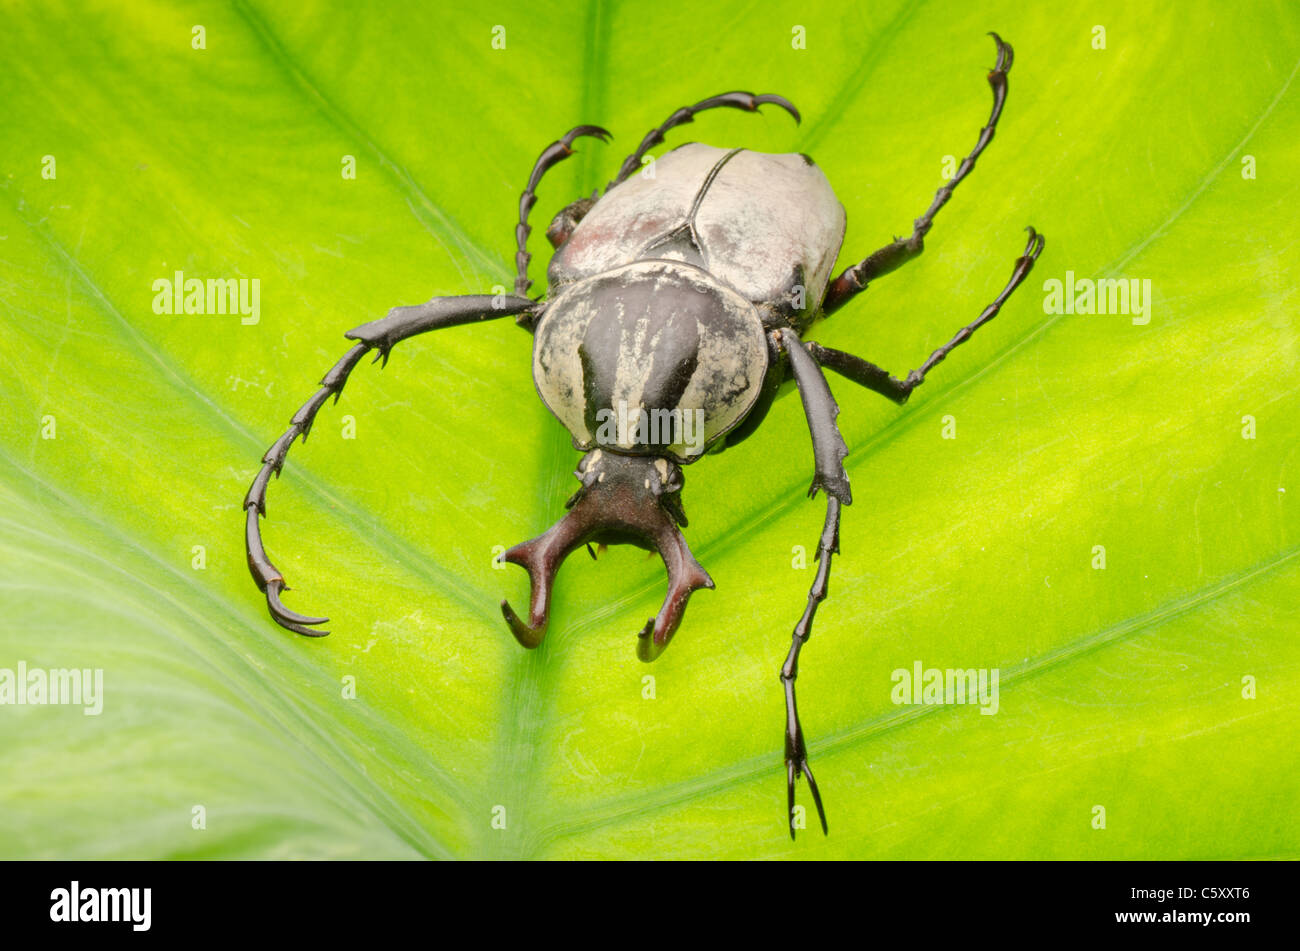 insect hart horn flower beetle dicronocephalus wallichii on leaf - Stock Image